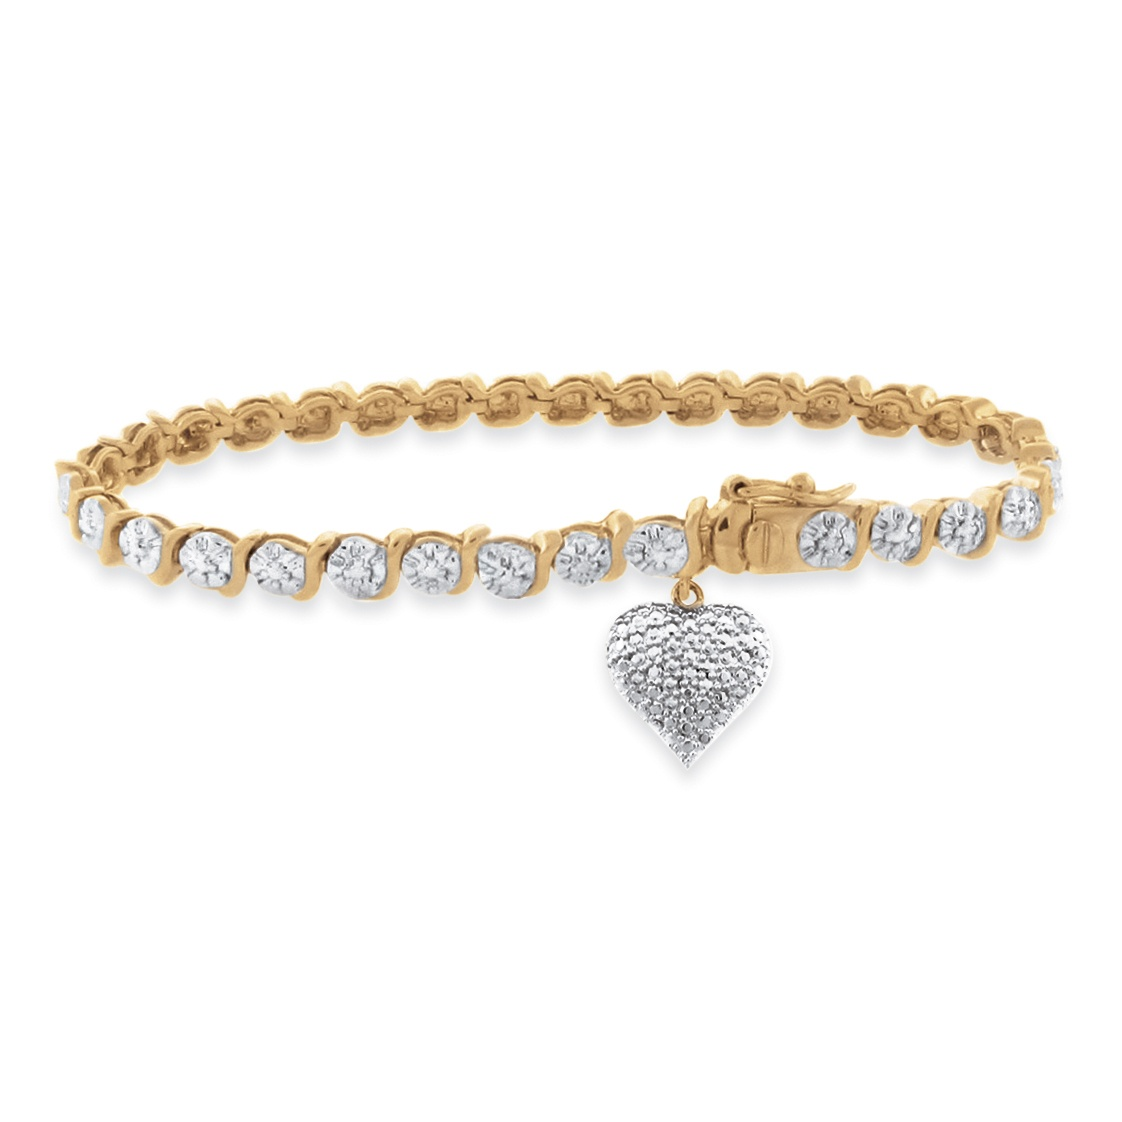 Gold Charm Bracelets: Diamond Accent S-Link Heart Charm Bracelet Two-Tone 18k